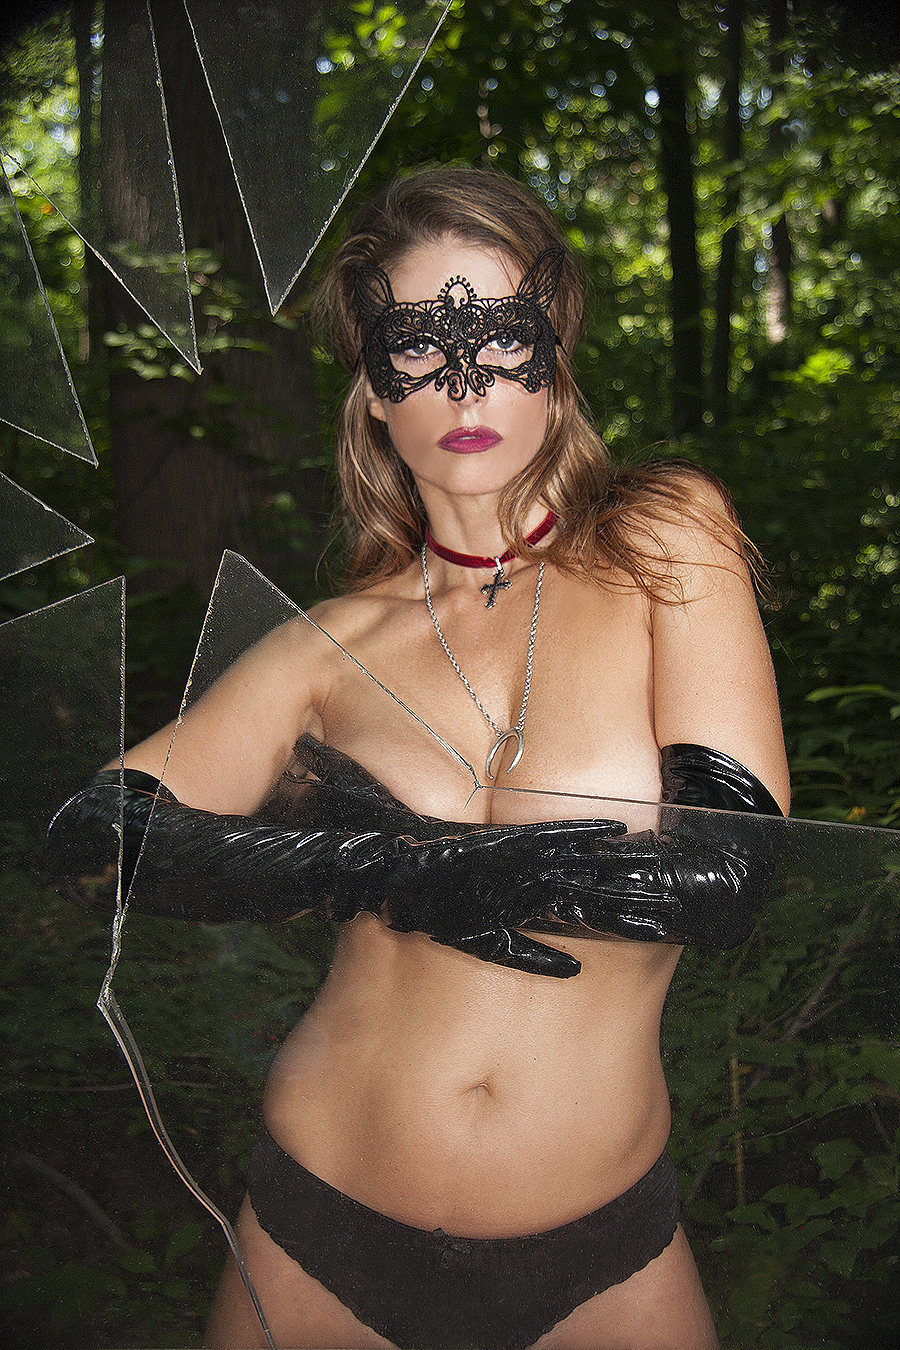 Tony_Ward_photography_portraiture_Jennifer_Grabel_Bates_Motel_underwear_broken_glass_mask_lace_Costume_latex_black_gloves